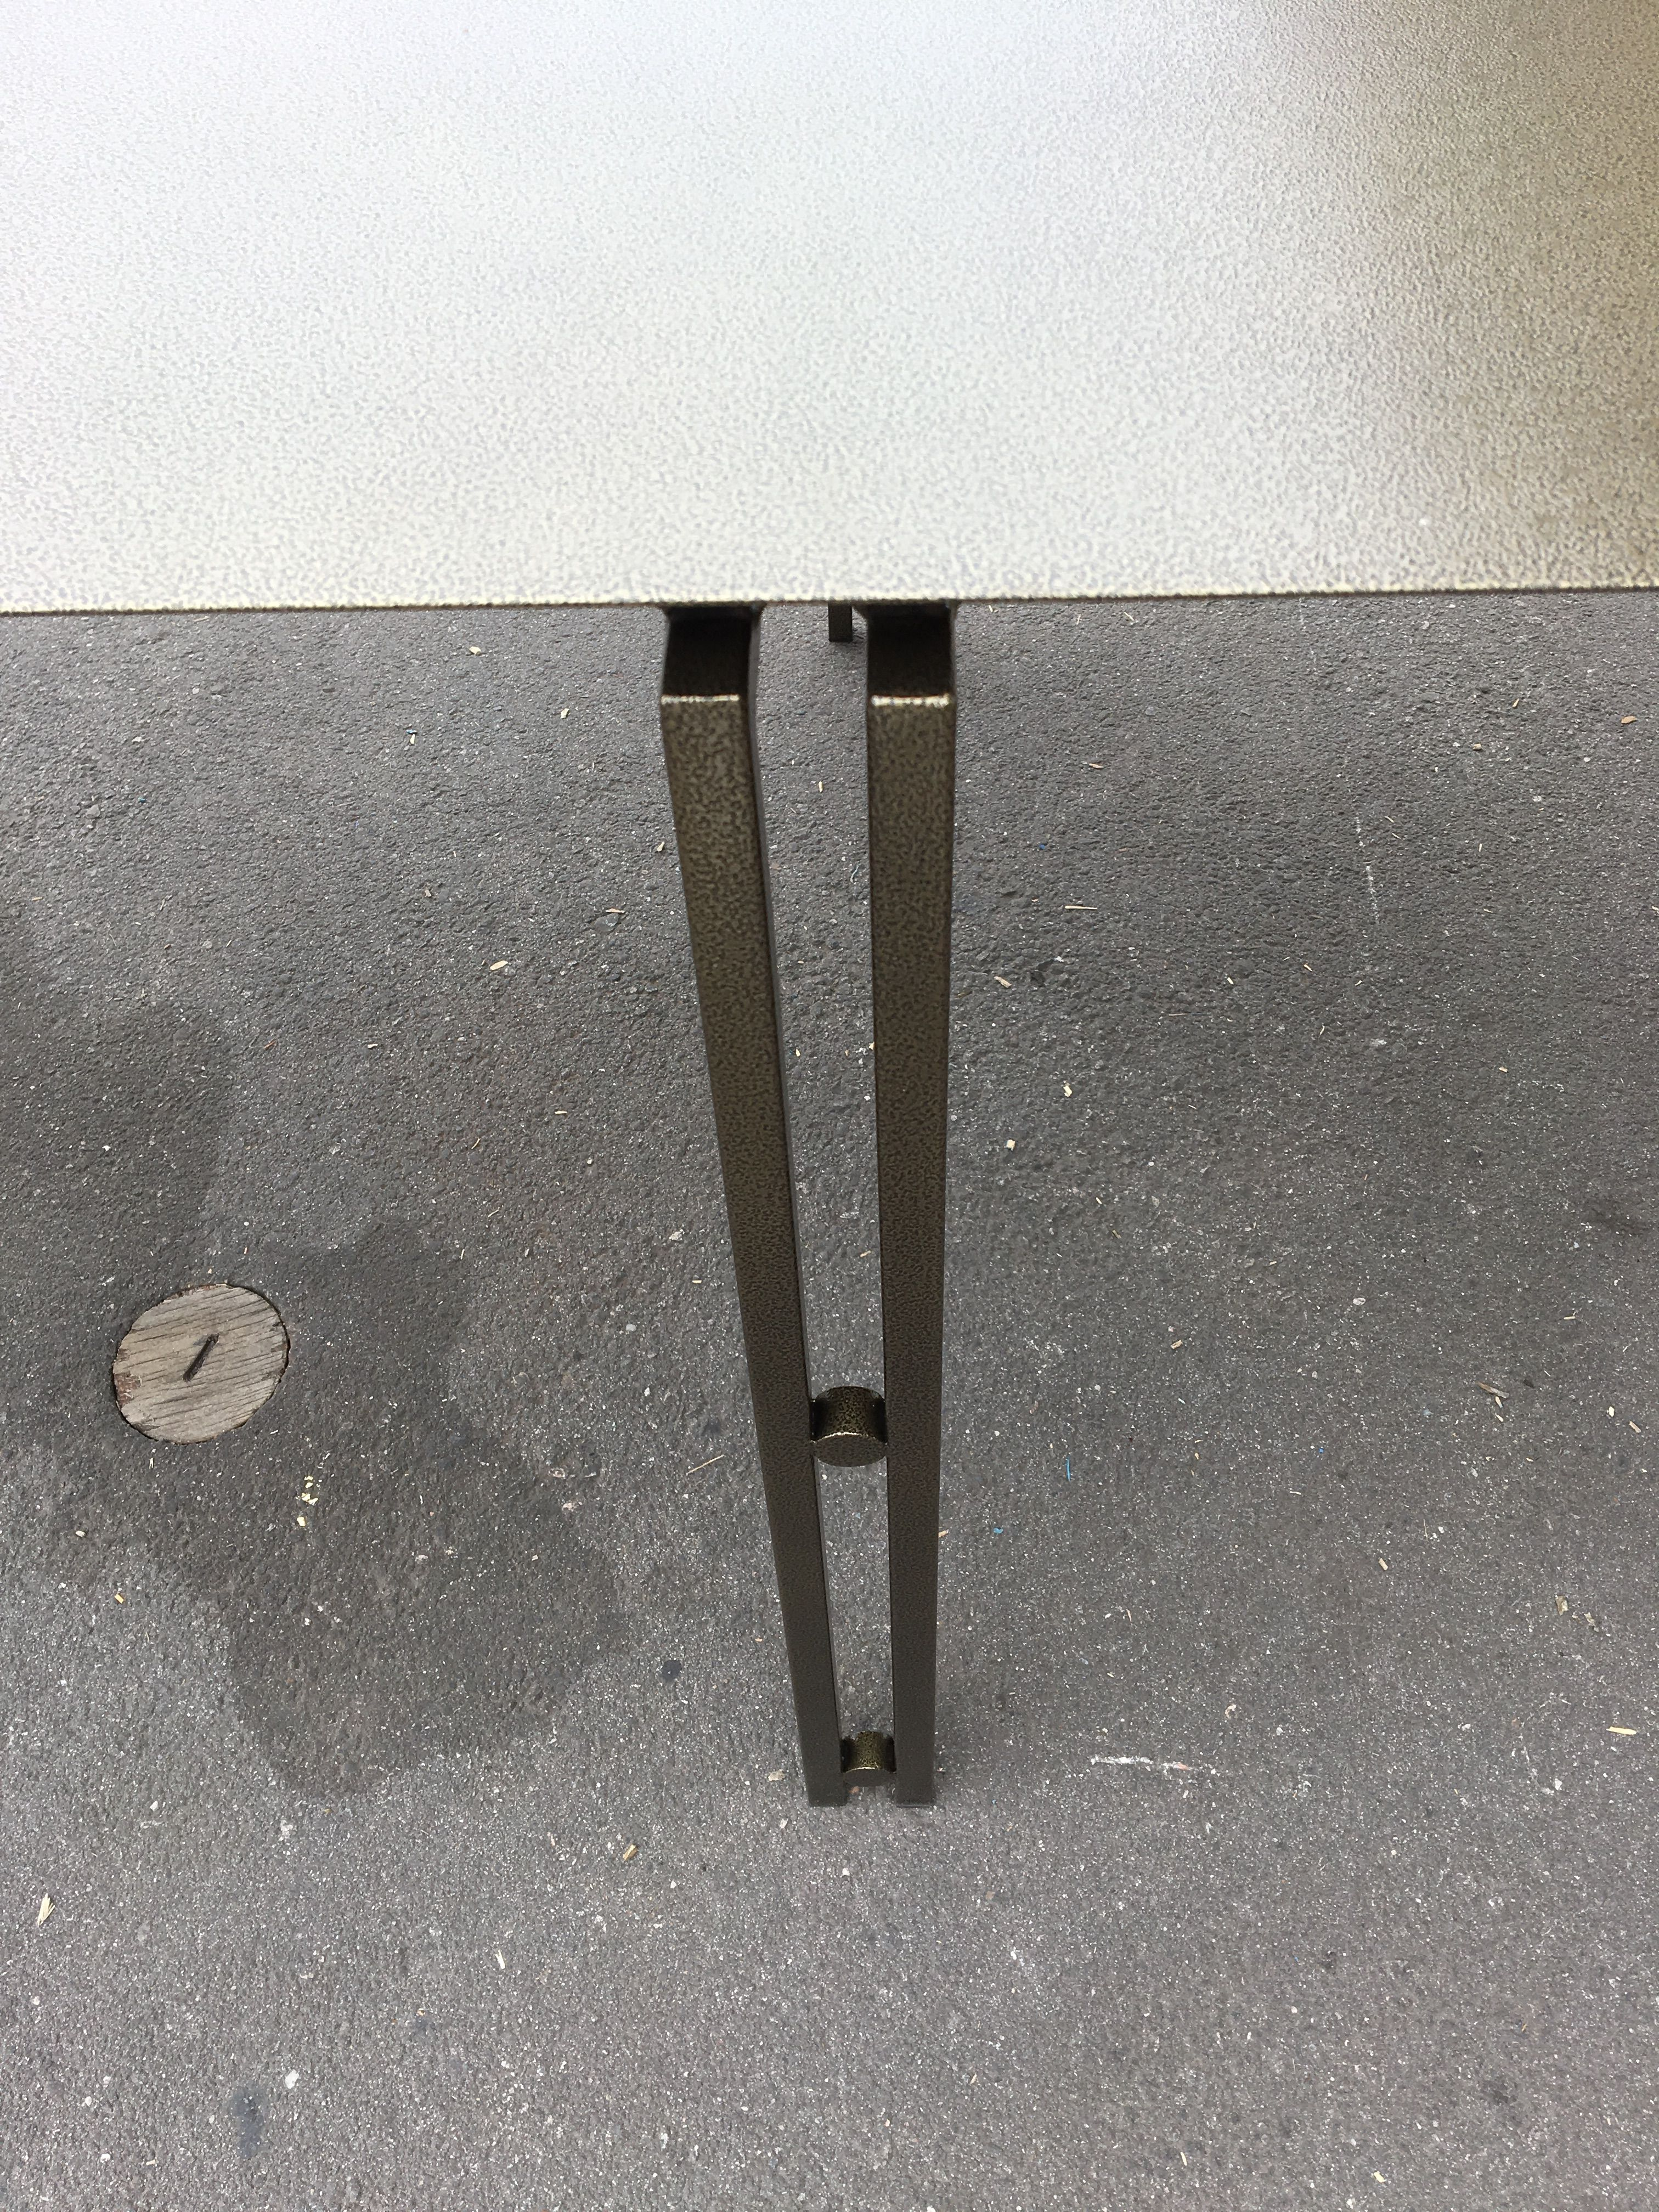 Suspension Metal Dining Table - Large Size product image 4